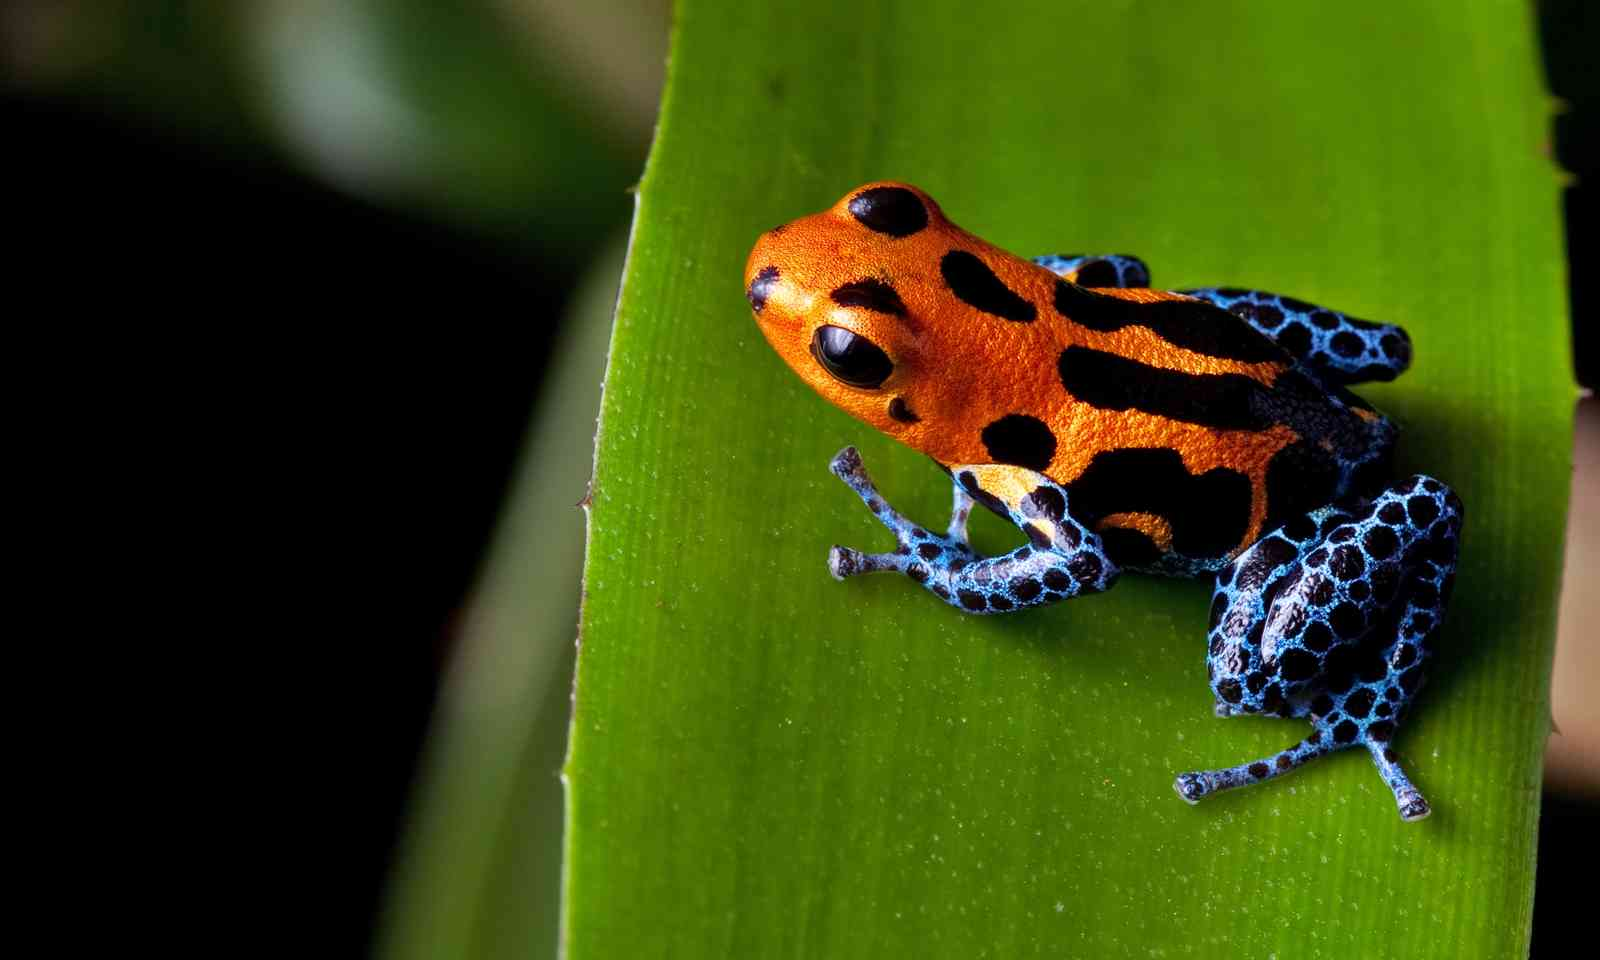 http://www.shutterstock.com/pic-88805893/stock-photo-red-striped-poison-dart-frog-blue-legs-of-amazon-rain-forest-in-peru-poisonous-animal-of-tropical.html